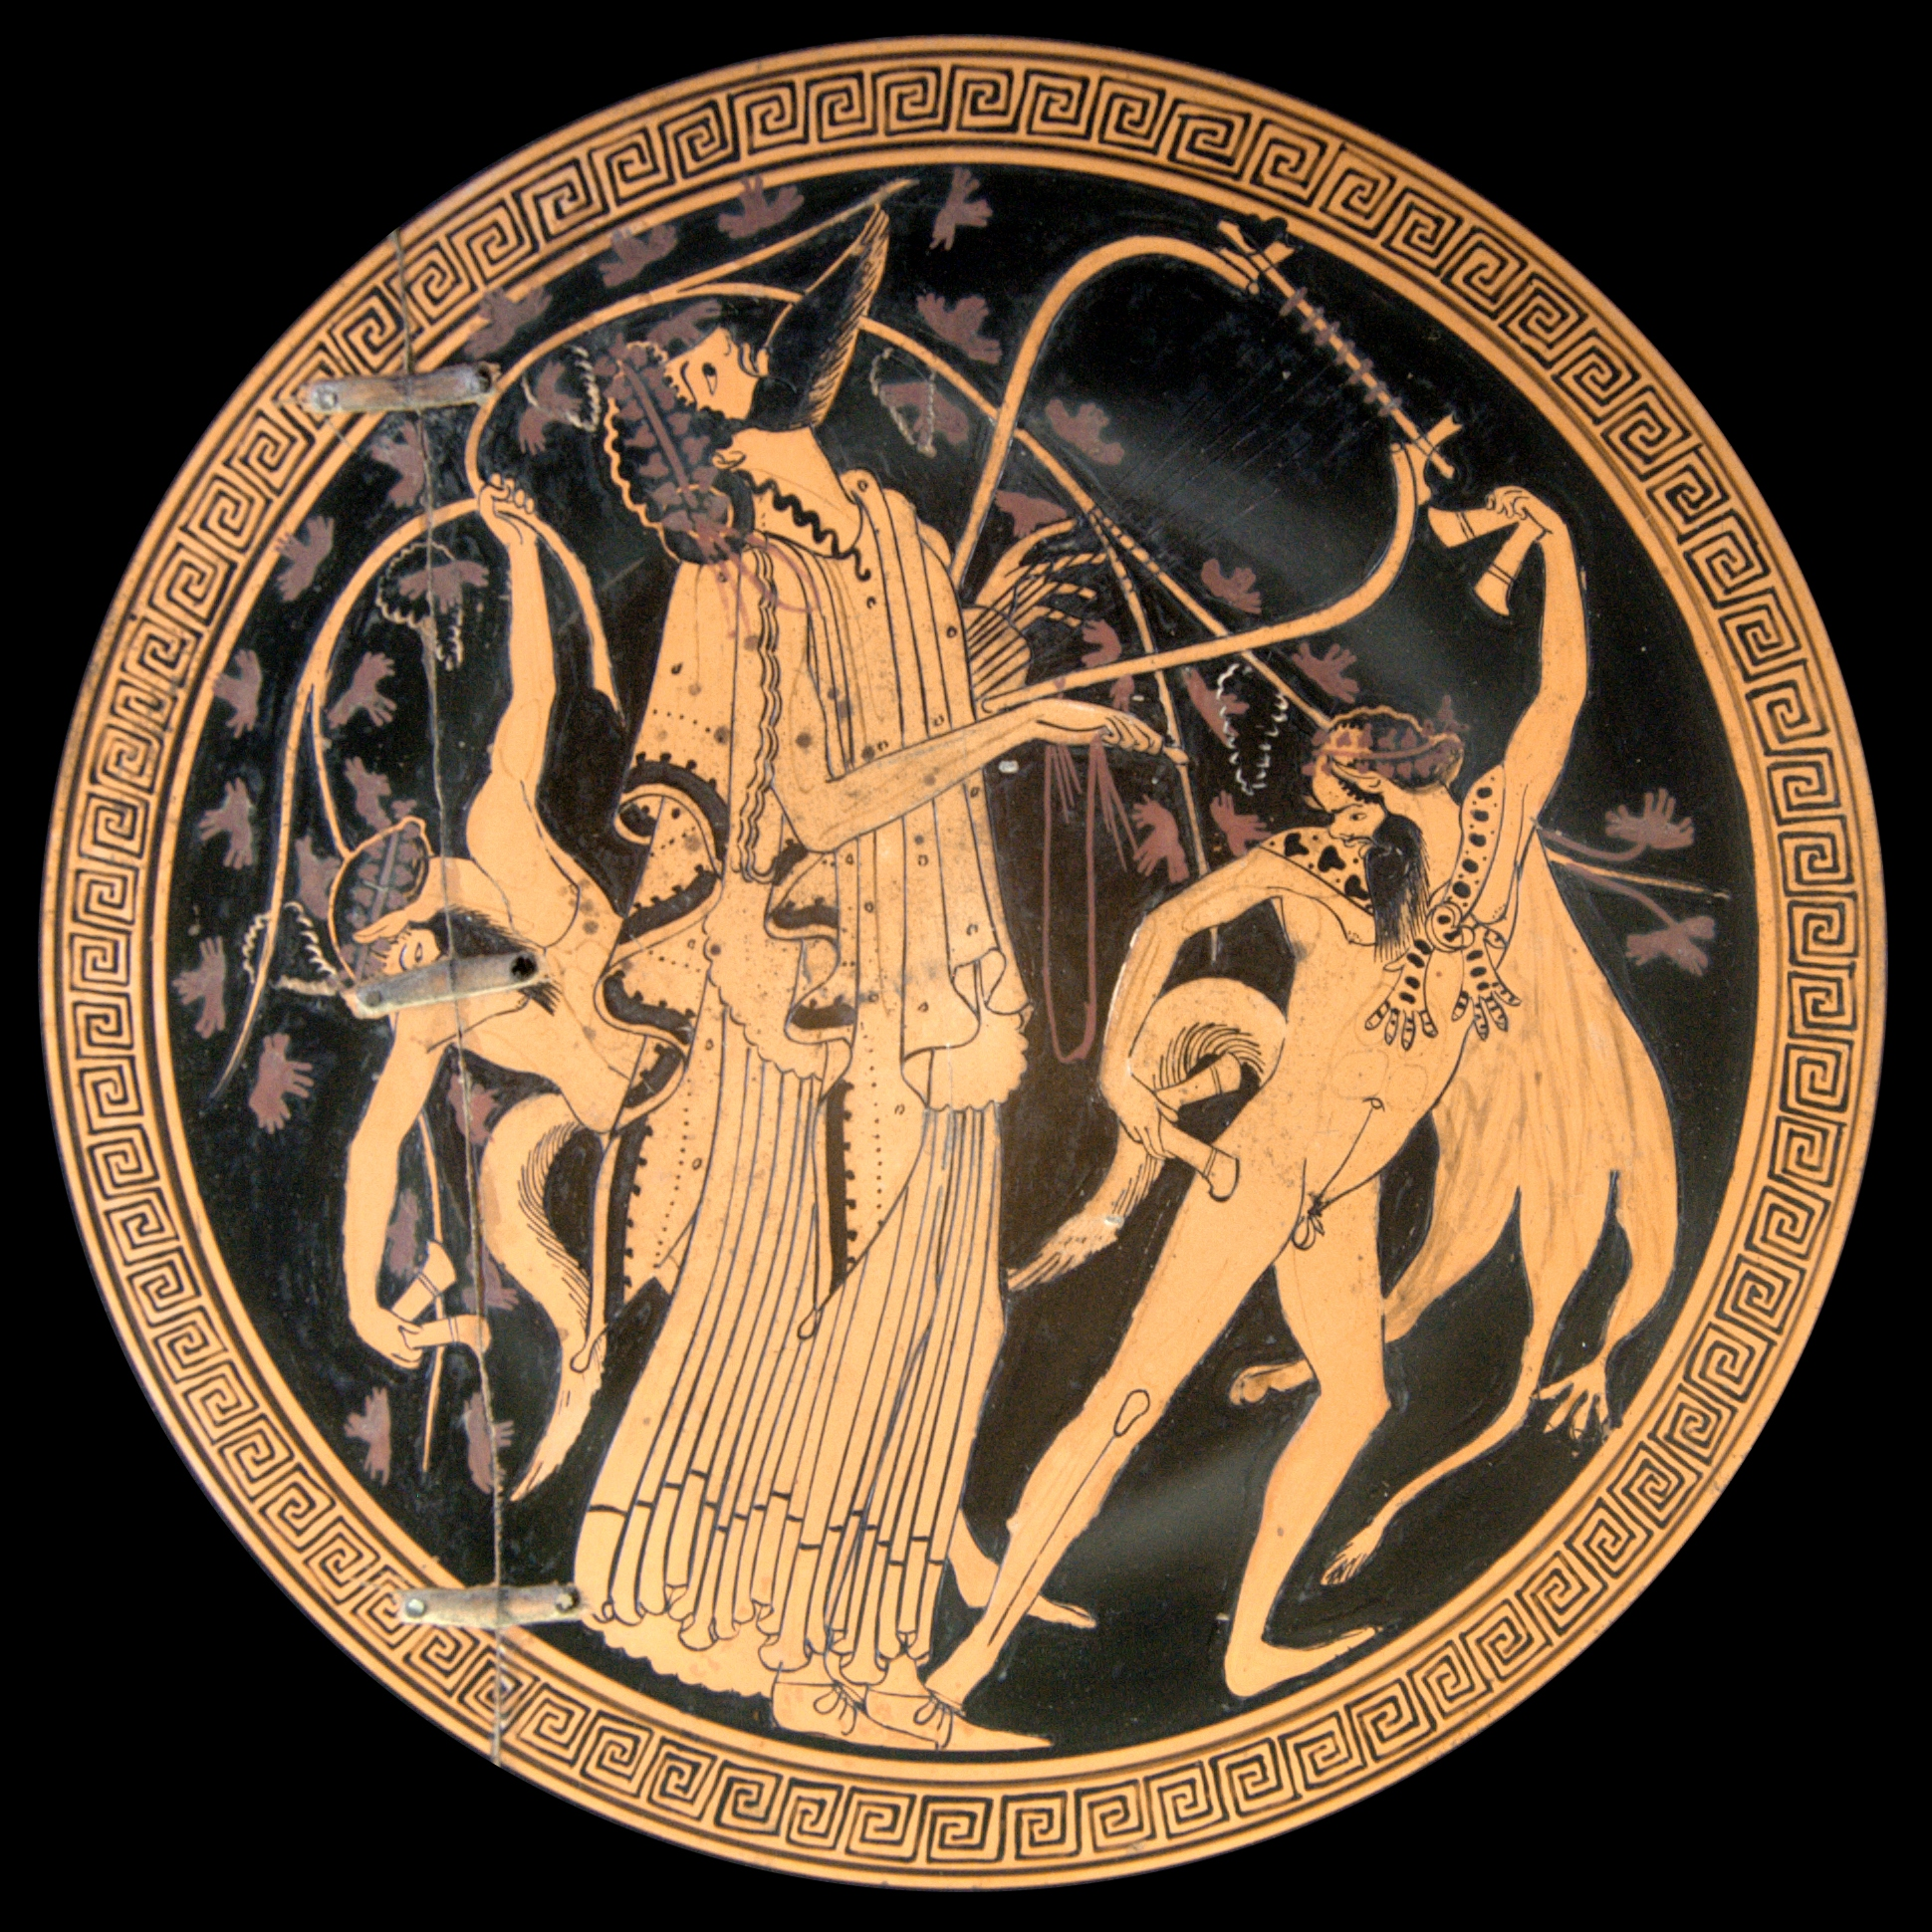 Dionysos and sileni. Attic red-figured cup interior, circa 480 BCE. Photo by Bibi Saint-Pol, own work, 2007-05-25) [Public domain], via Wikimedia Commons.